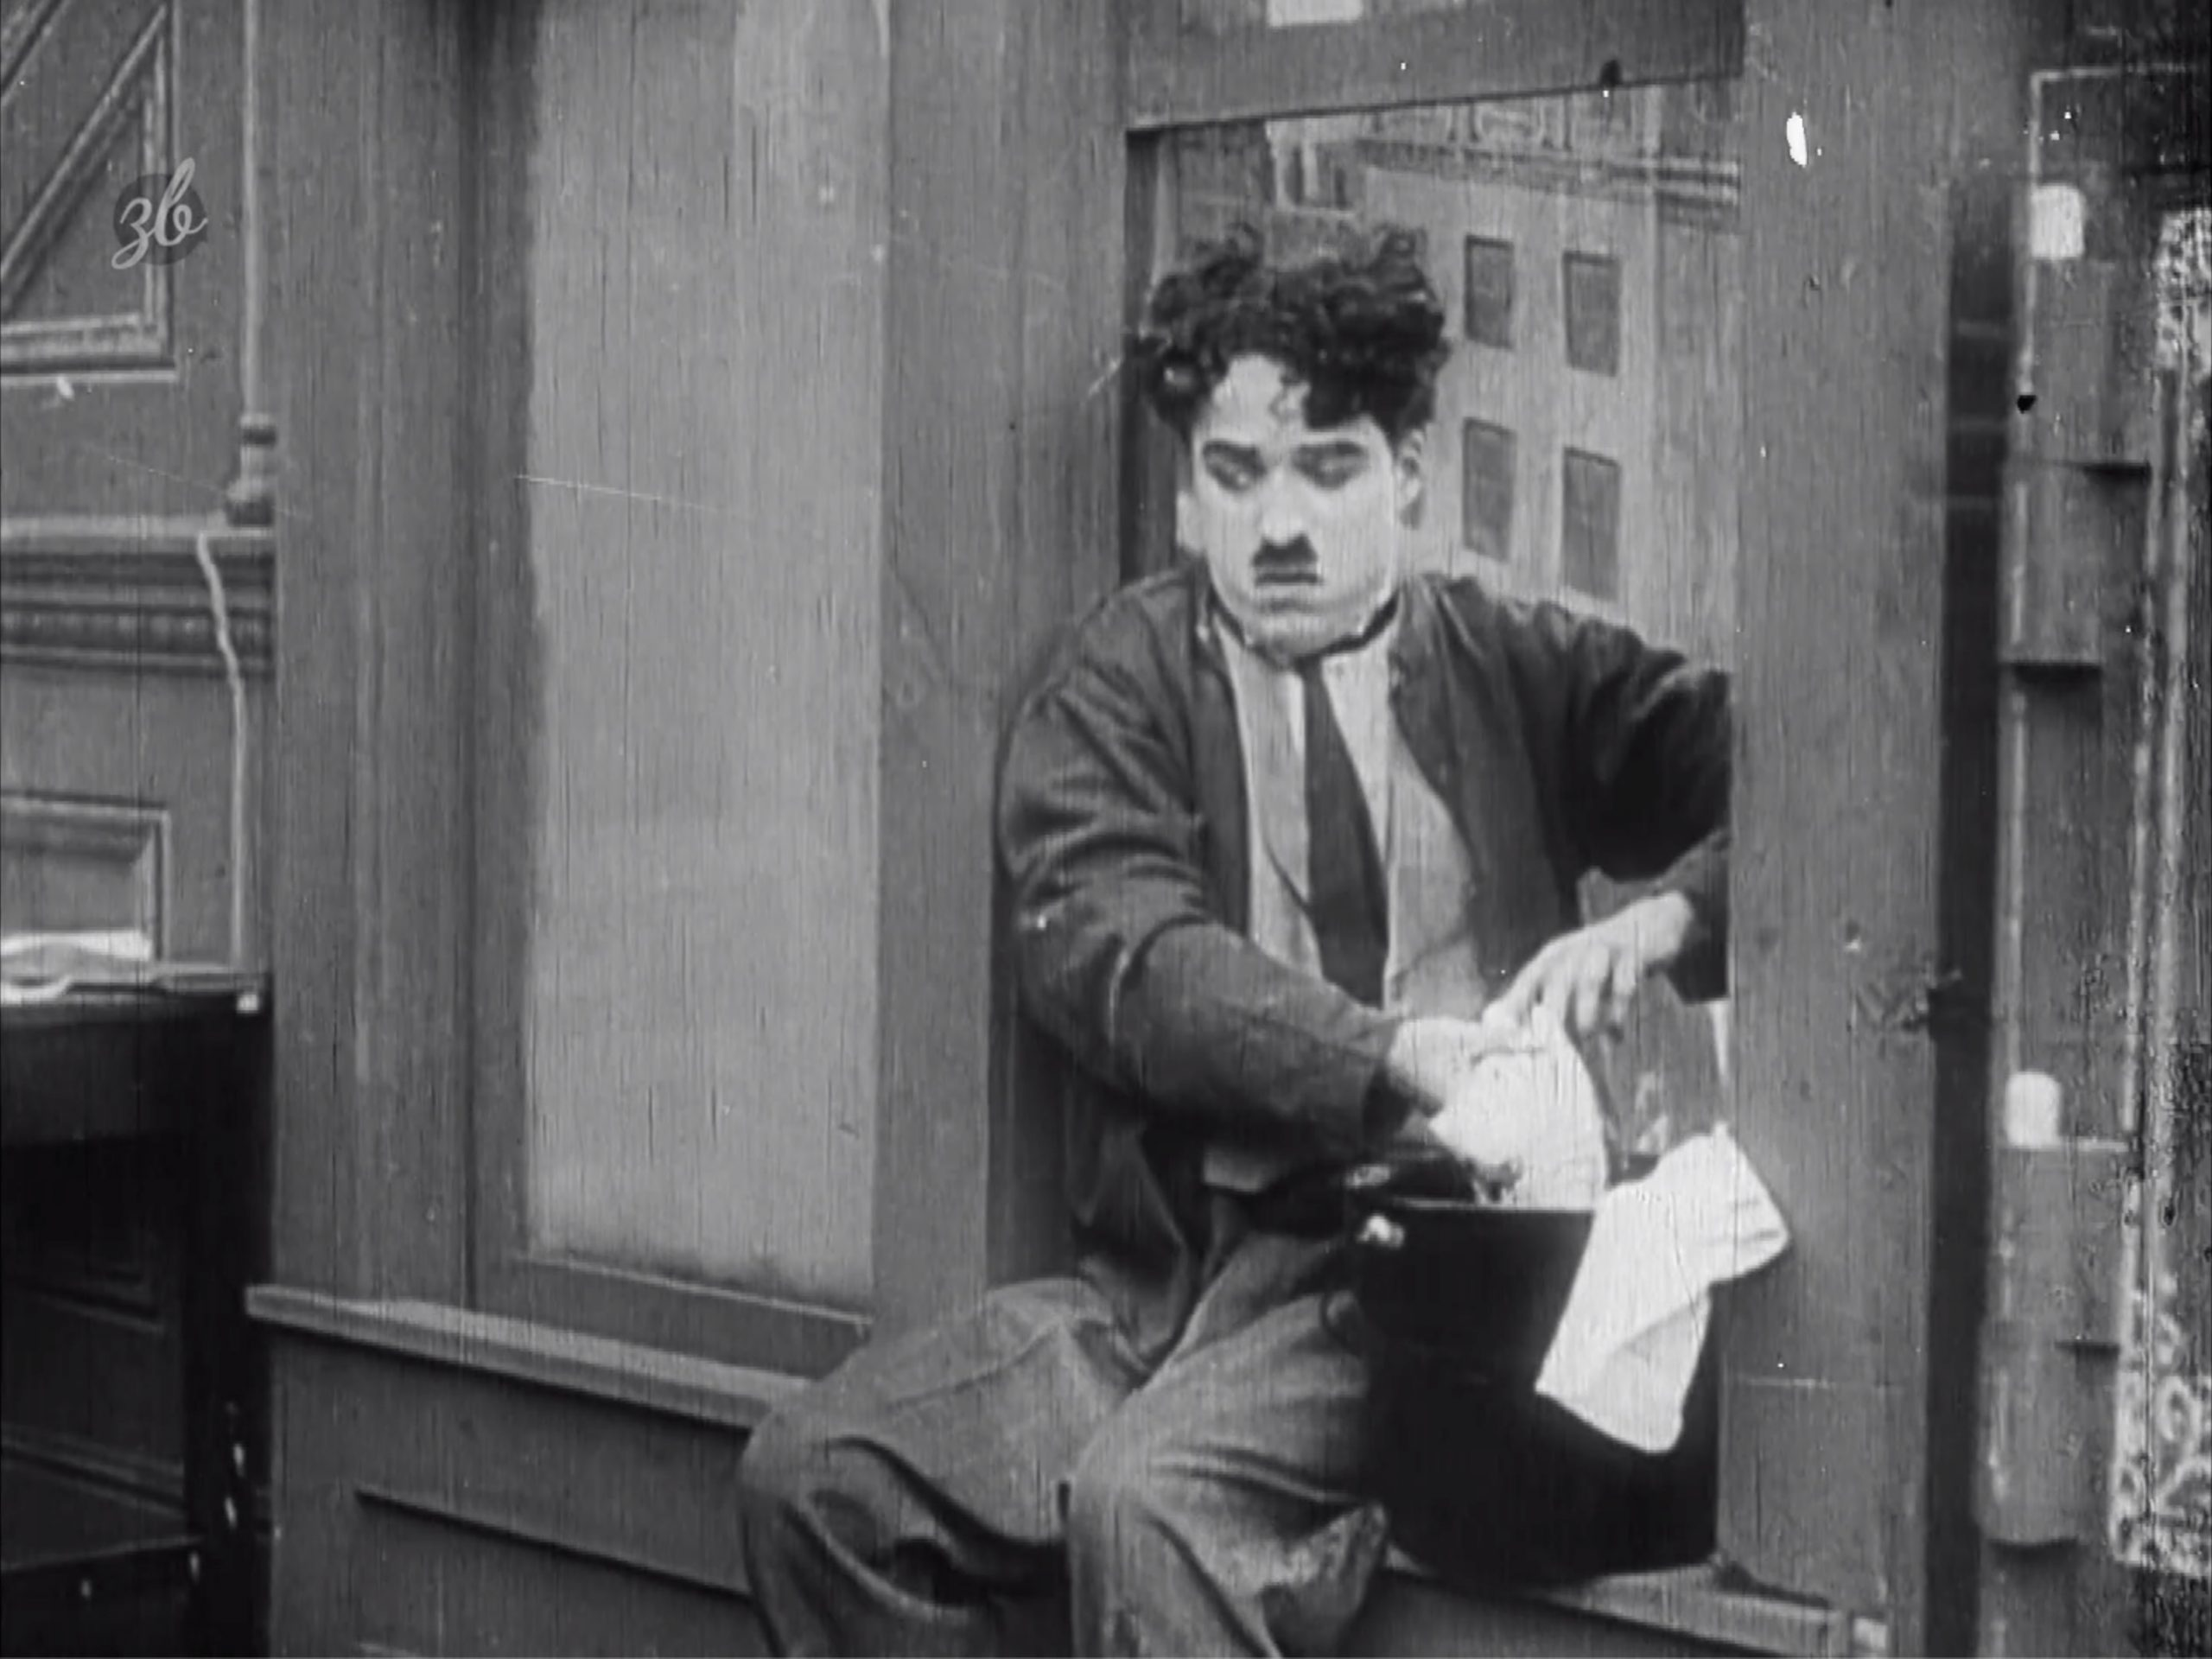 Charly Chaplin - Janitor